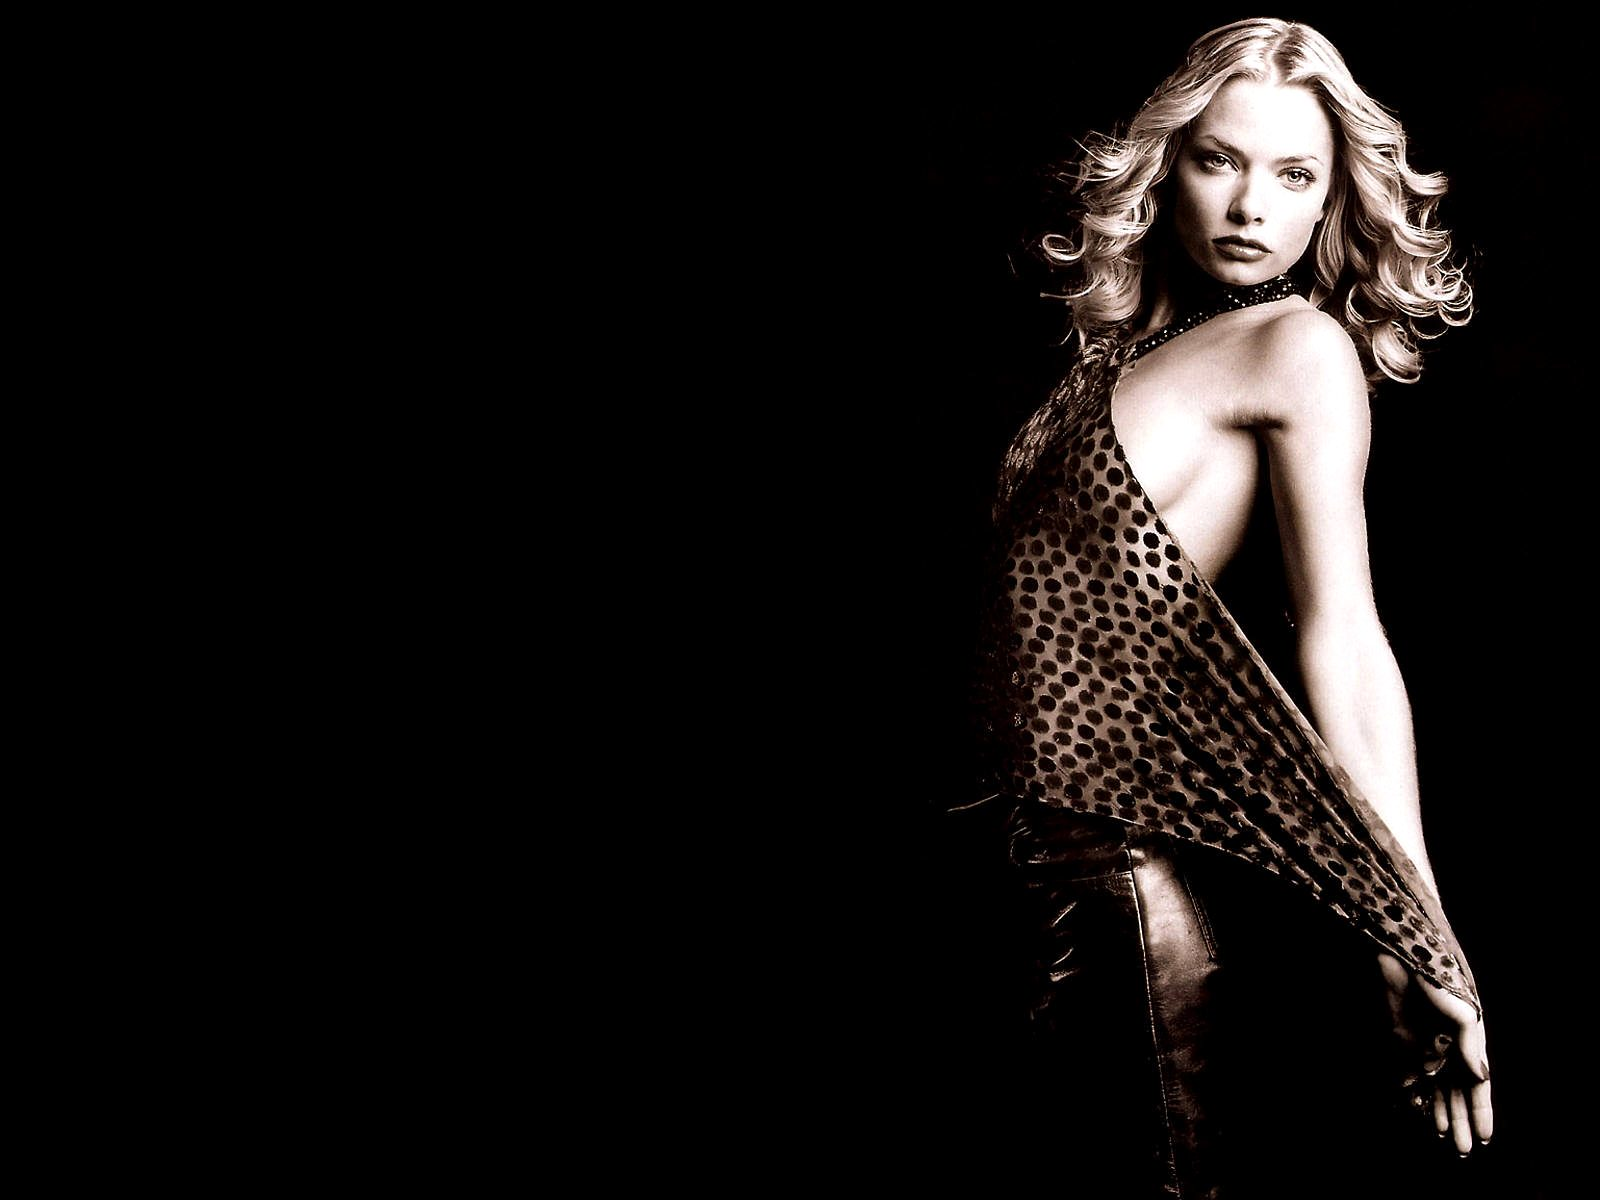 1600x1200 - Jaime Pressly Wallpapers 11